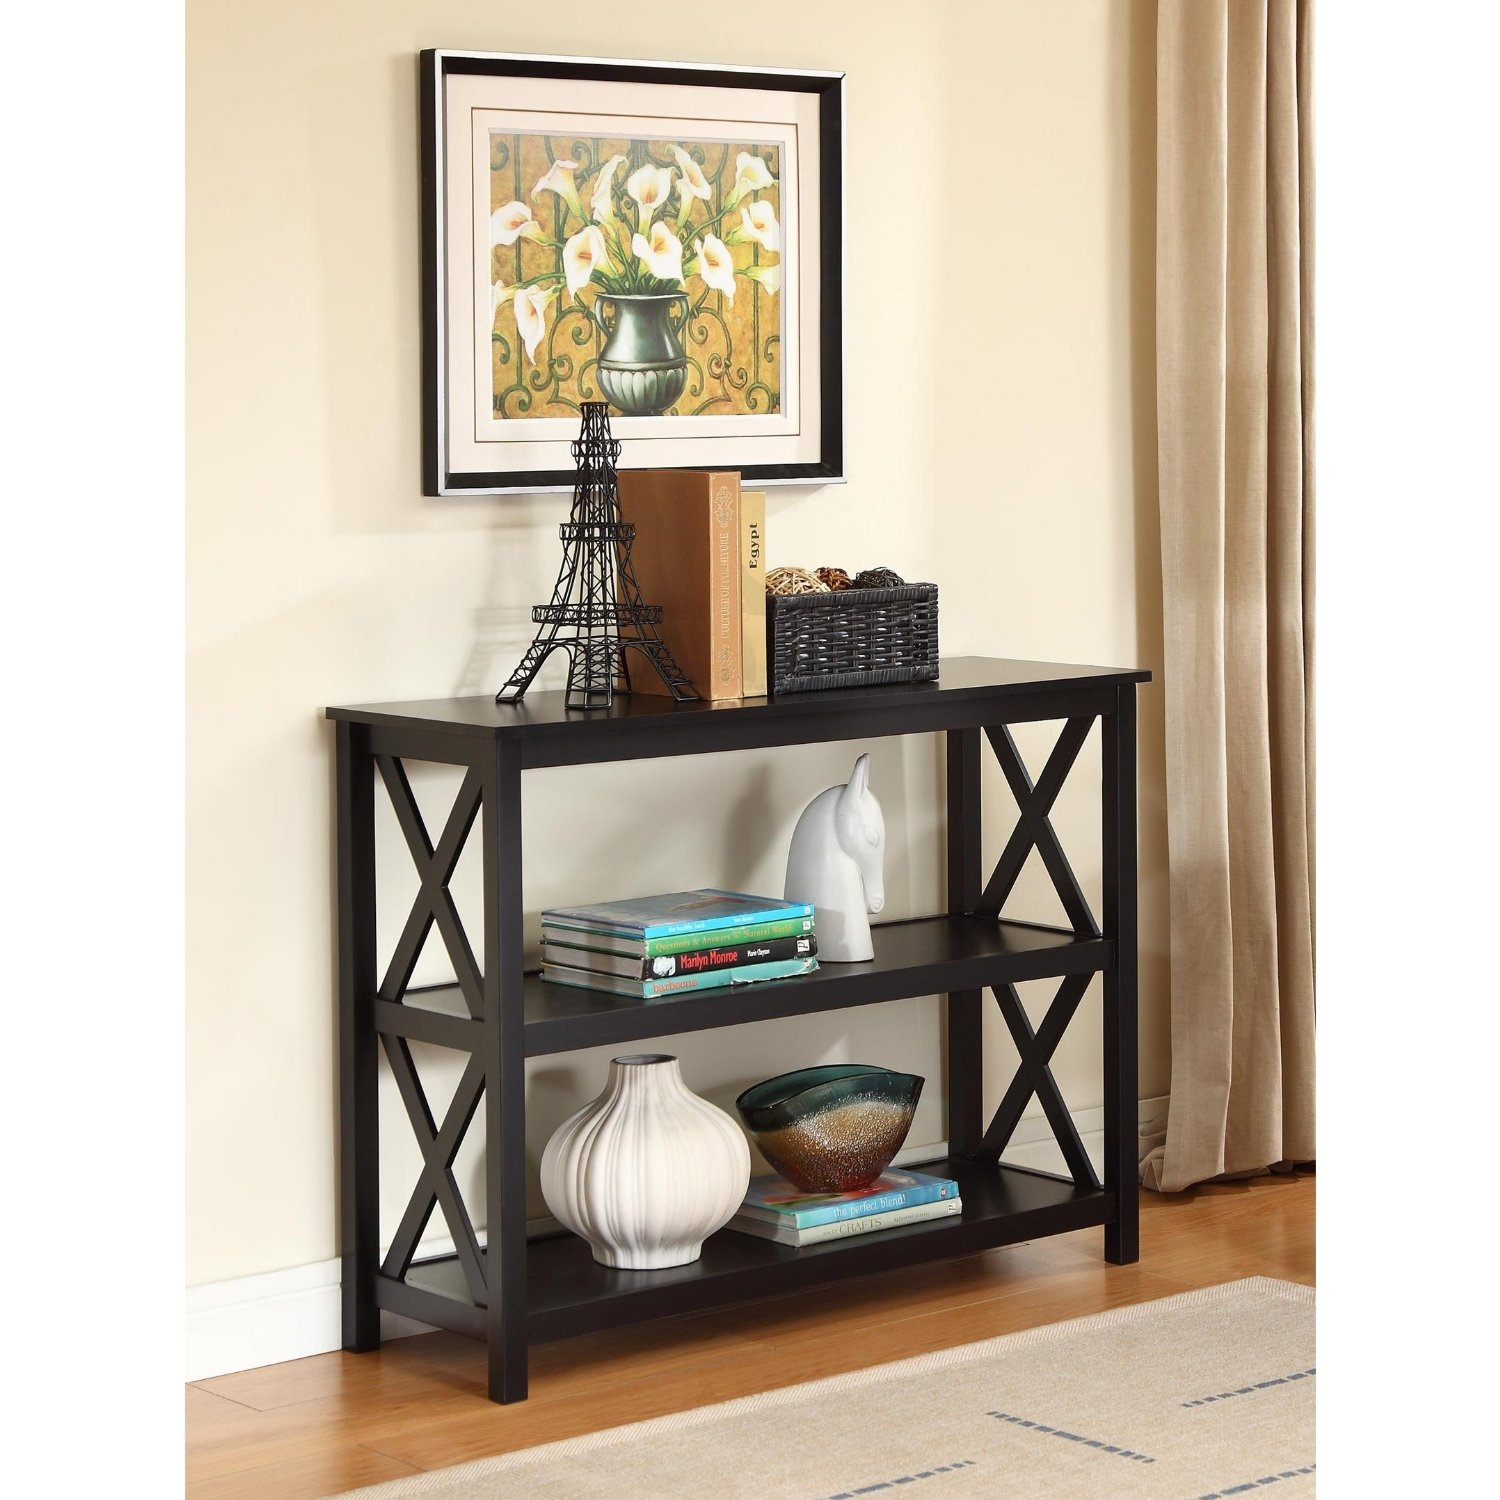 3-Tier Black Sofa Table Bookcase Living Room Shelves ...